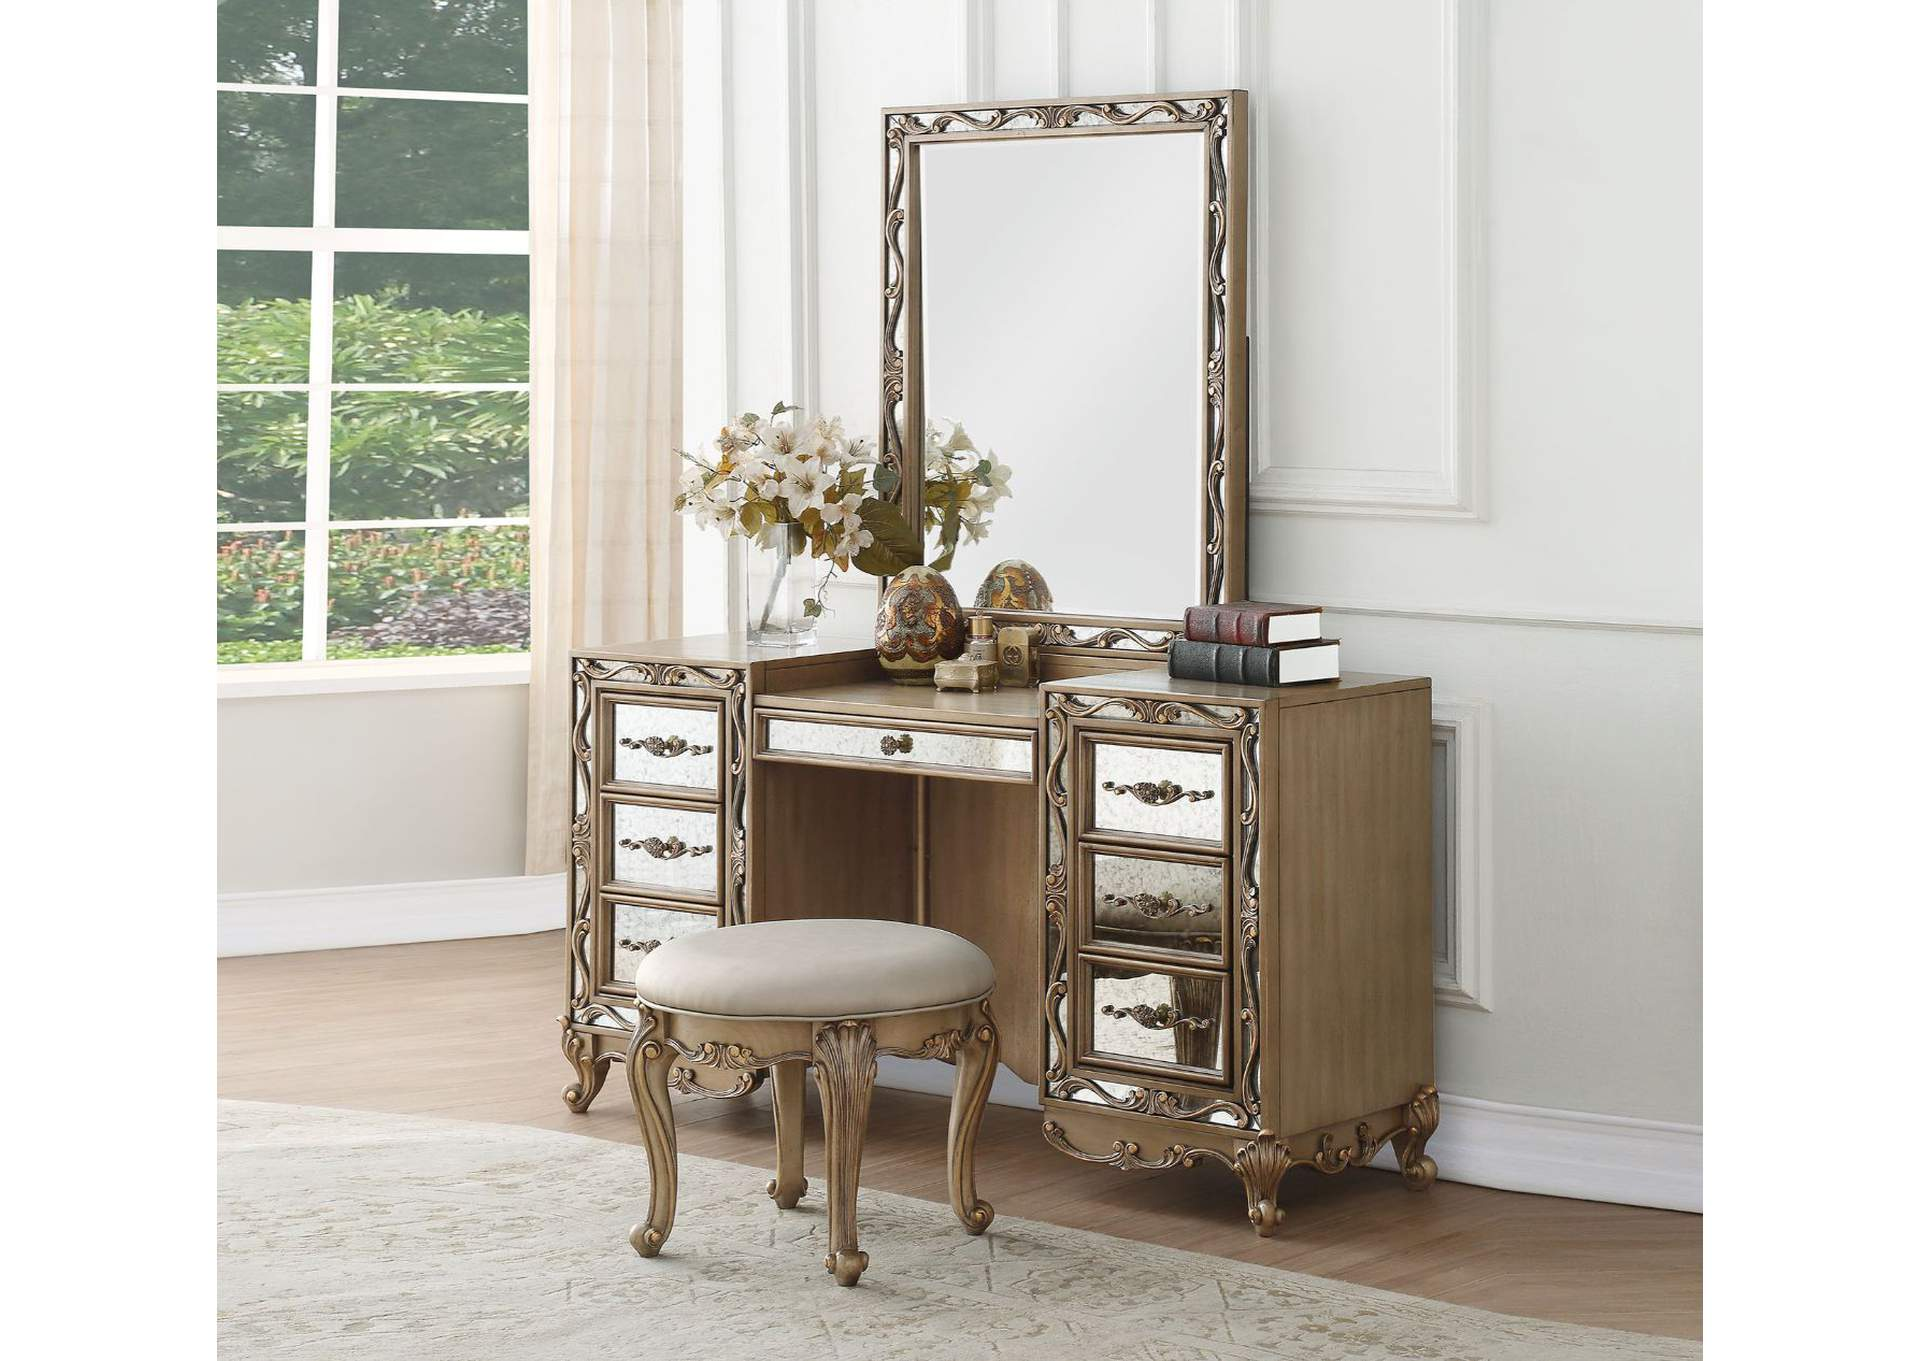 Orianne Antique Gold Vanity Desk,Acme